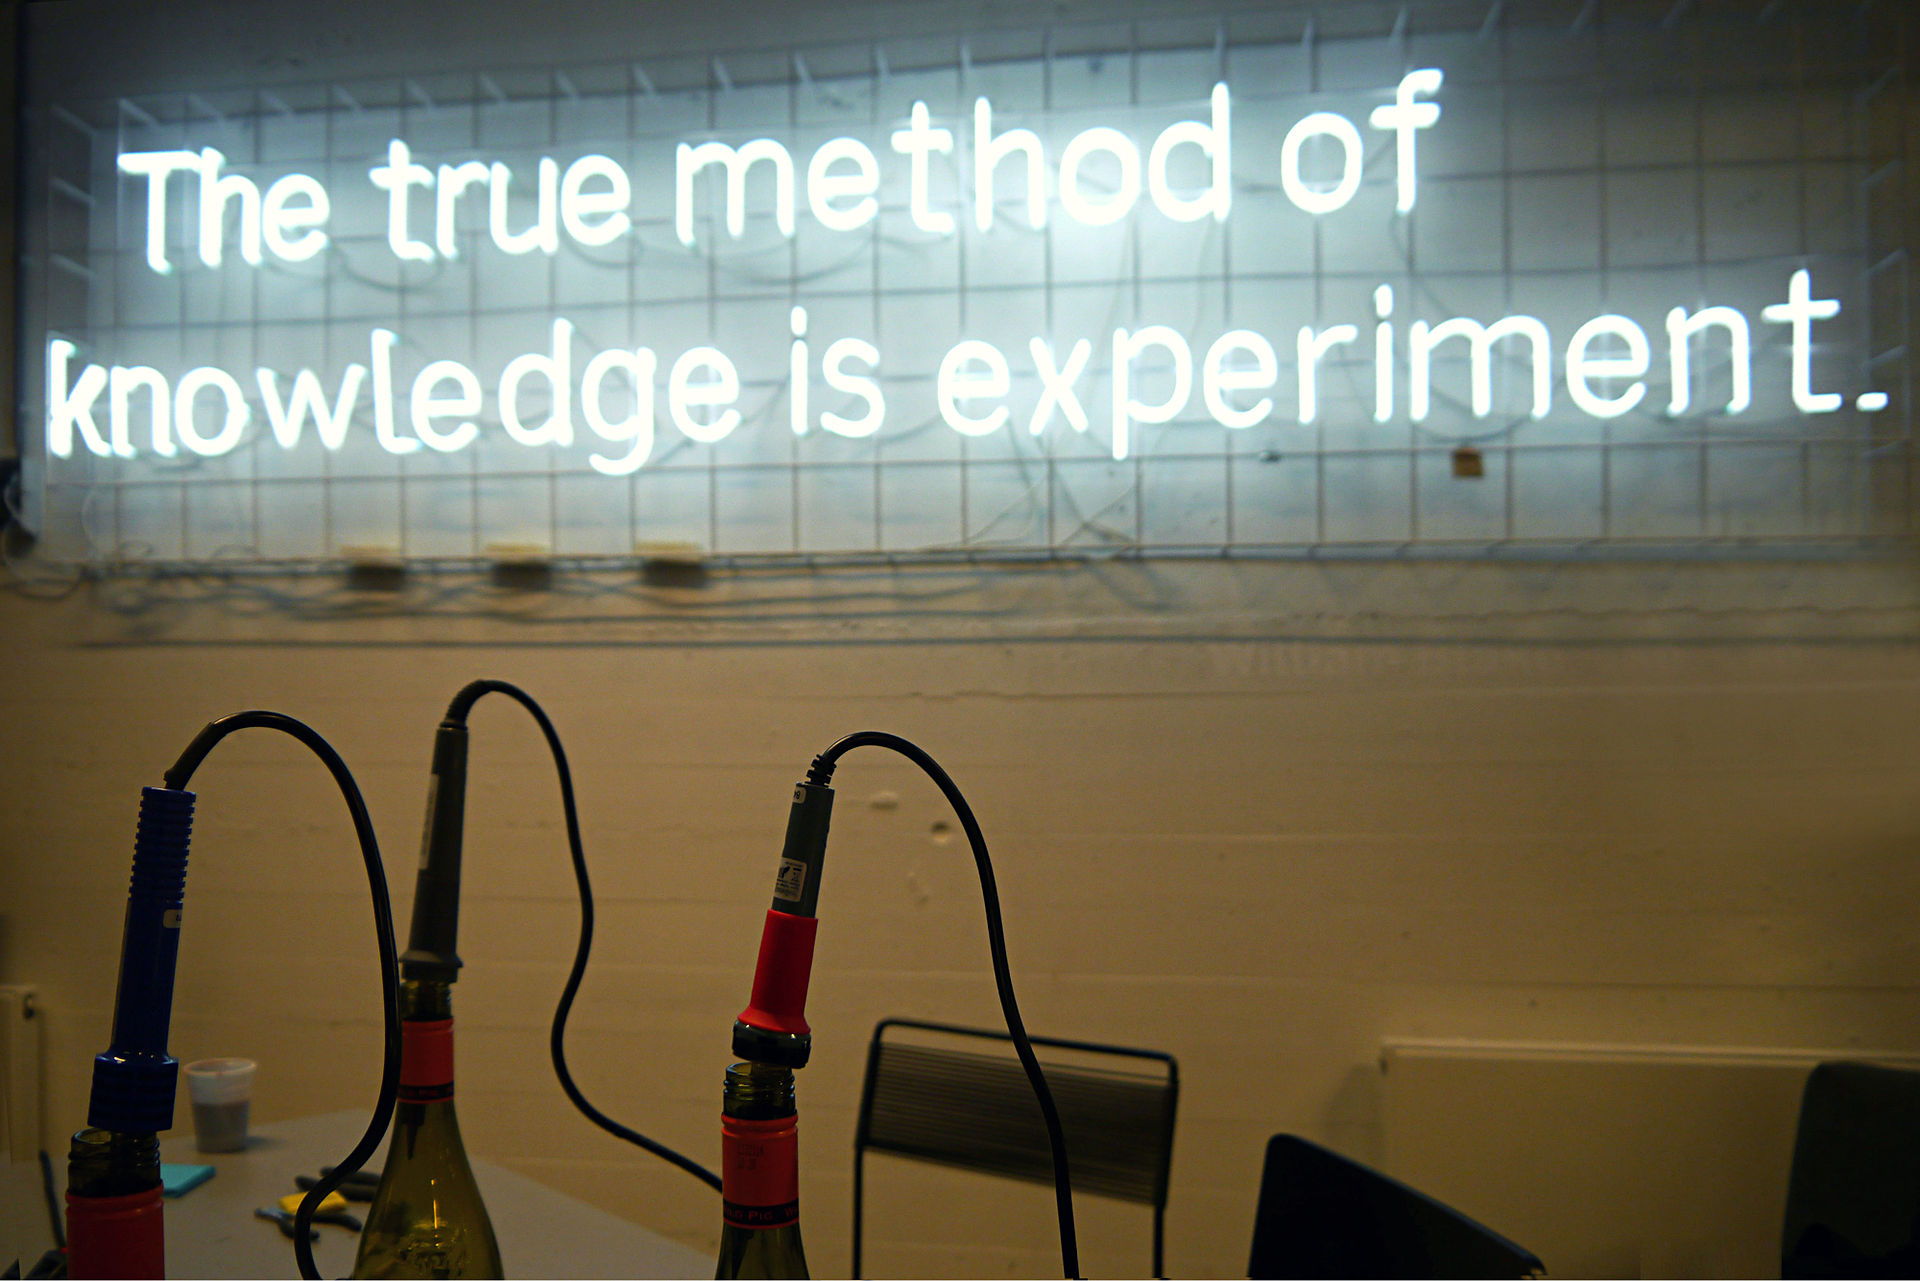 The_true_method_of_knowledge_is_experiment_-_Dutch_Design_Week_2014_-_Natlab,_Eindhoven_(uploaded_on_2014-10-25_16.50.15_by_soohyang.song).jpg